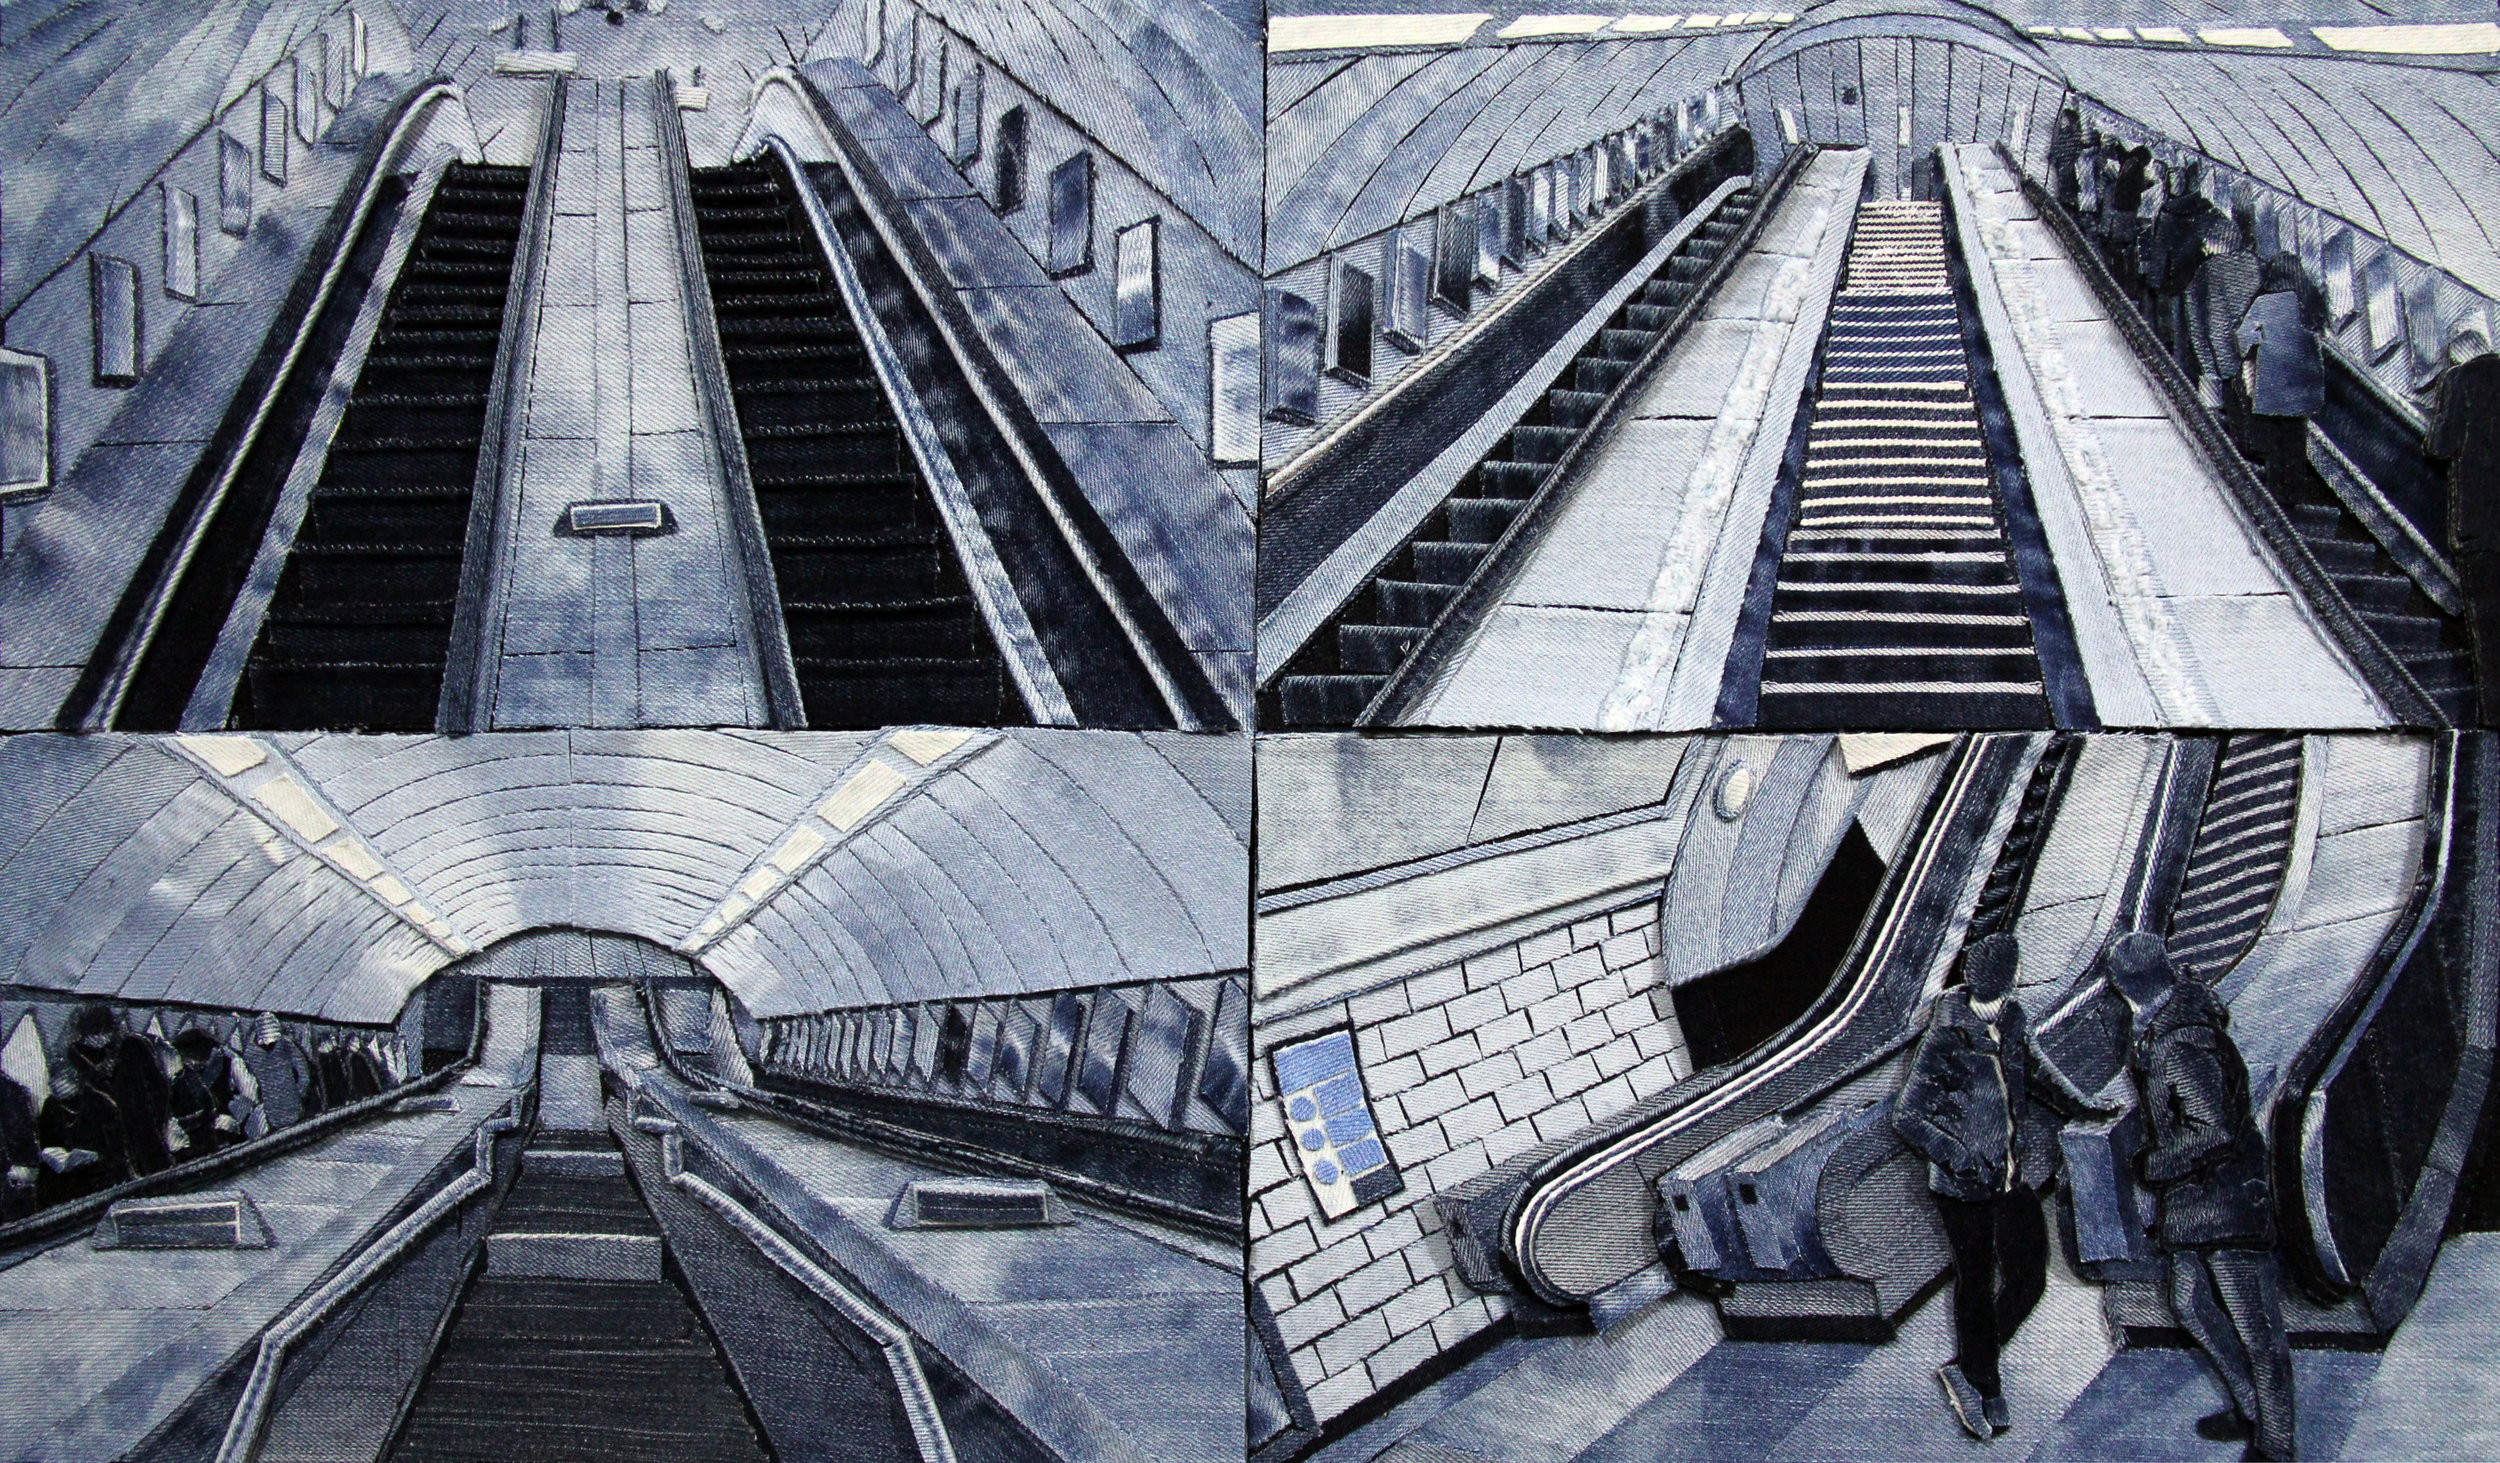 Notting Hill Gate Station escalators